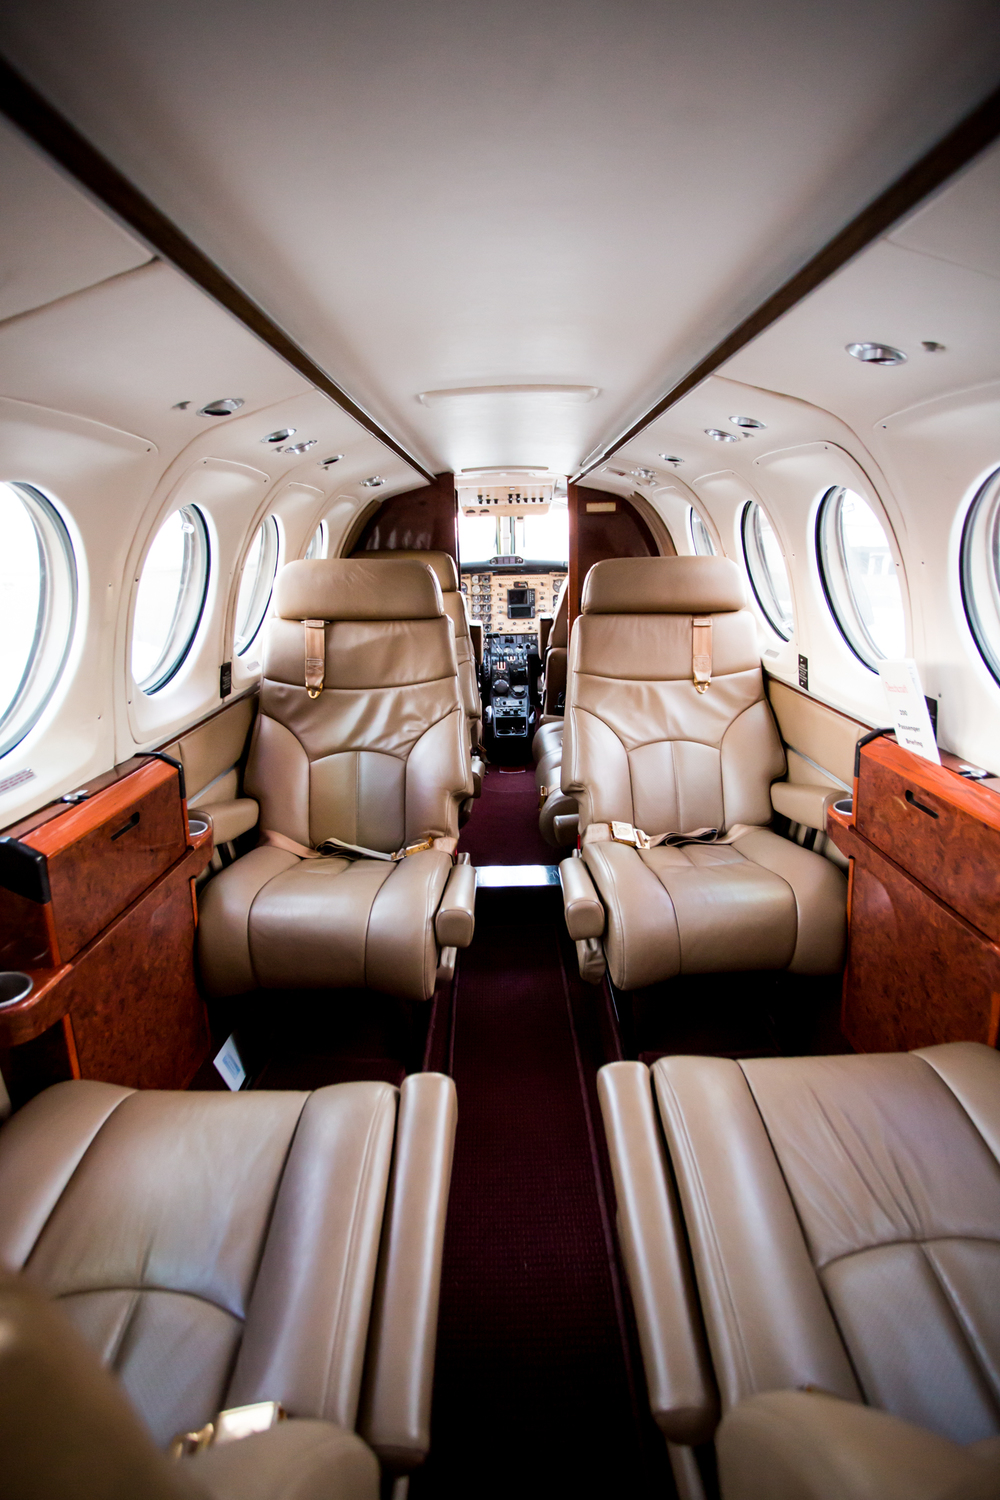 aircraft group specialists ppa capabilities cabinets interior interiors